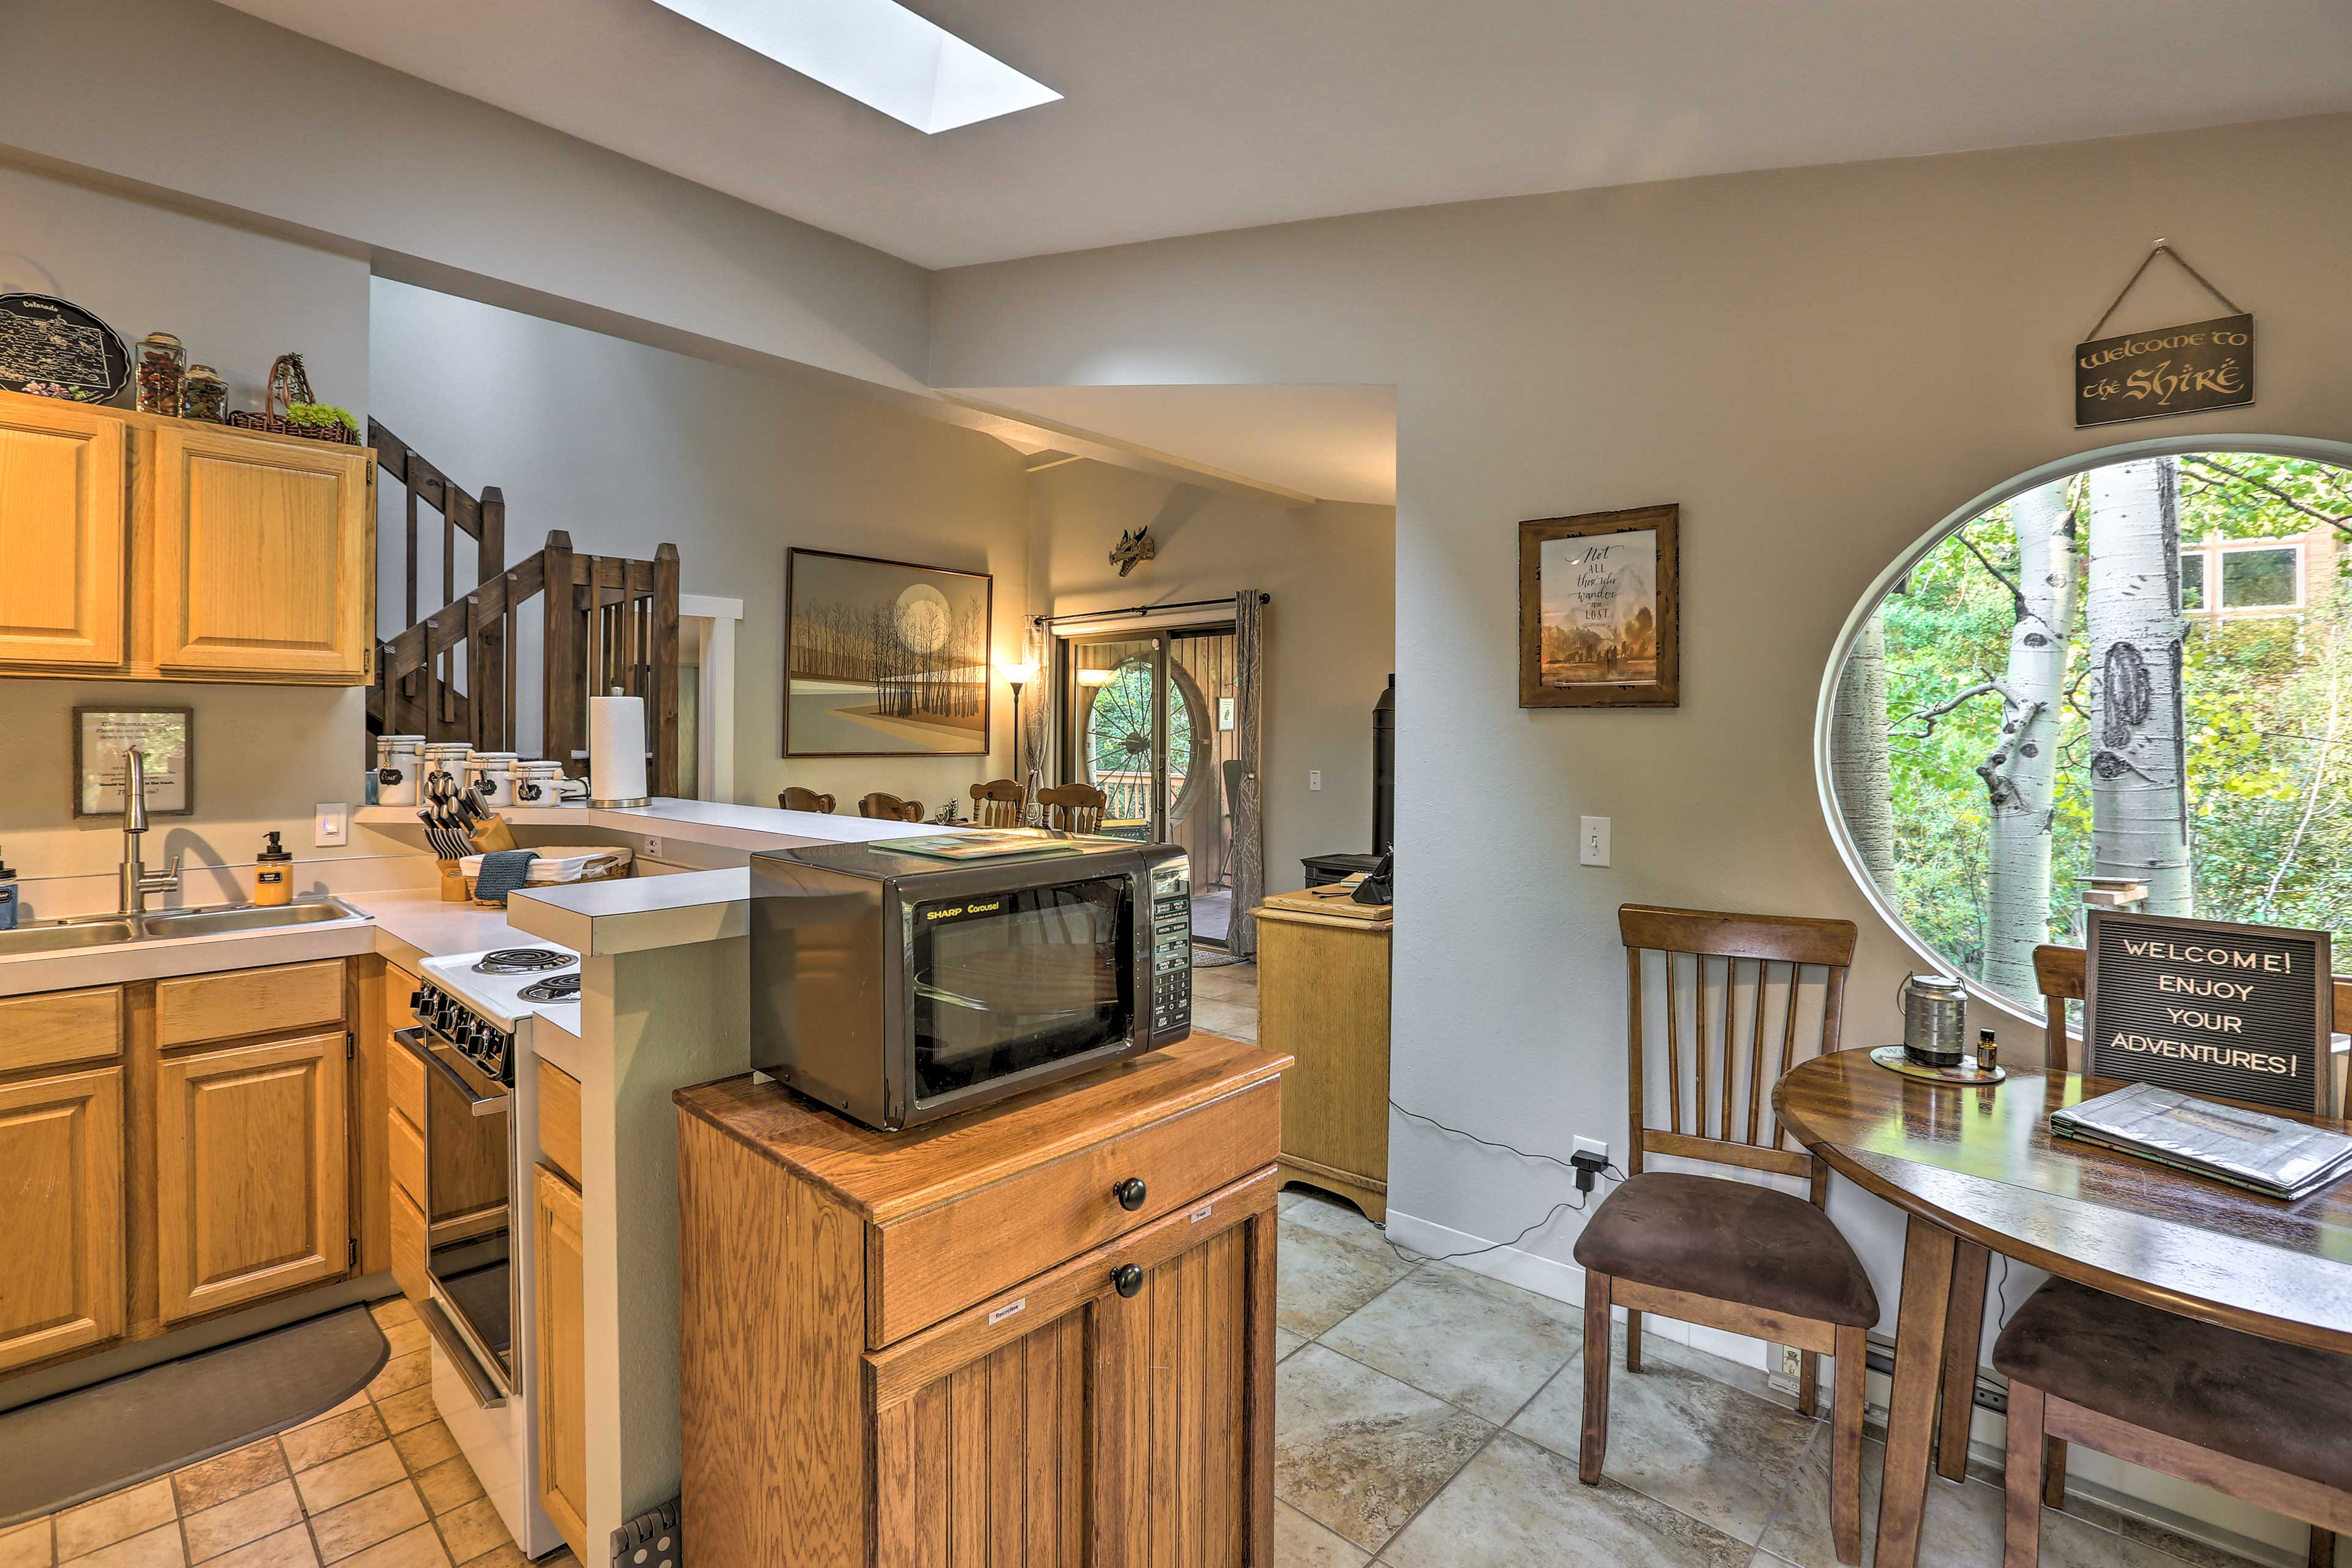 Make all your meals in this well-equipped kitchen!